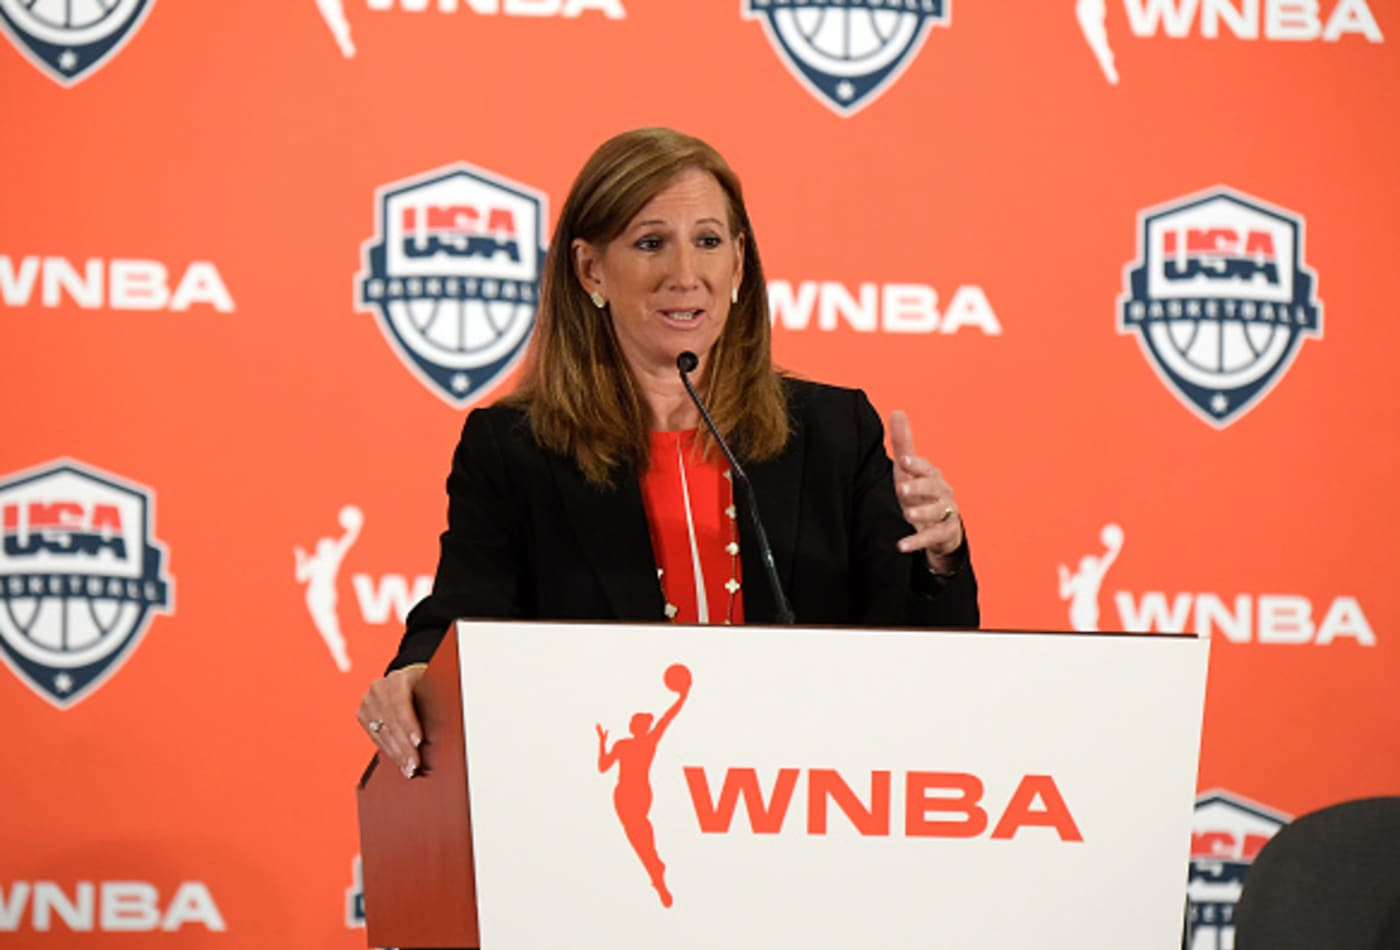 WNBA agrees to 53% pay raise, maternity benefits for players in new collective bargaining agreement